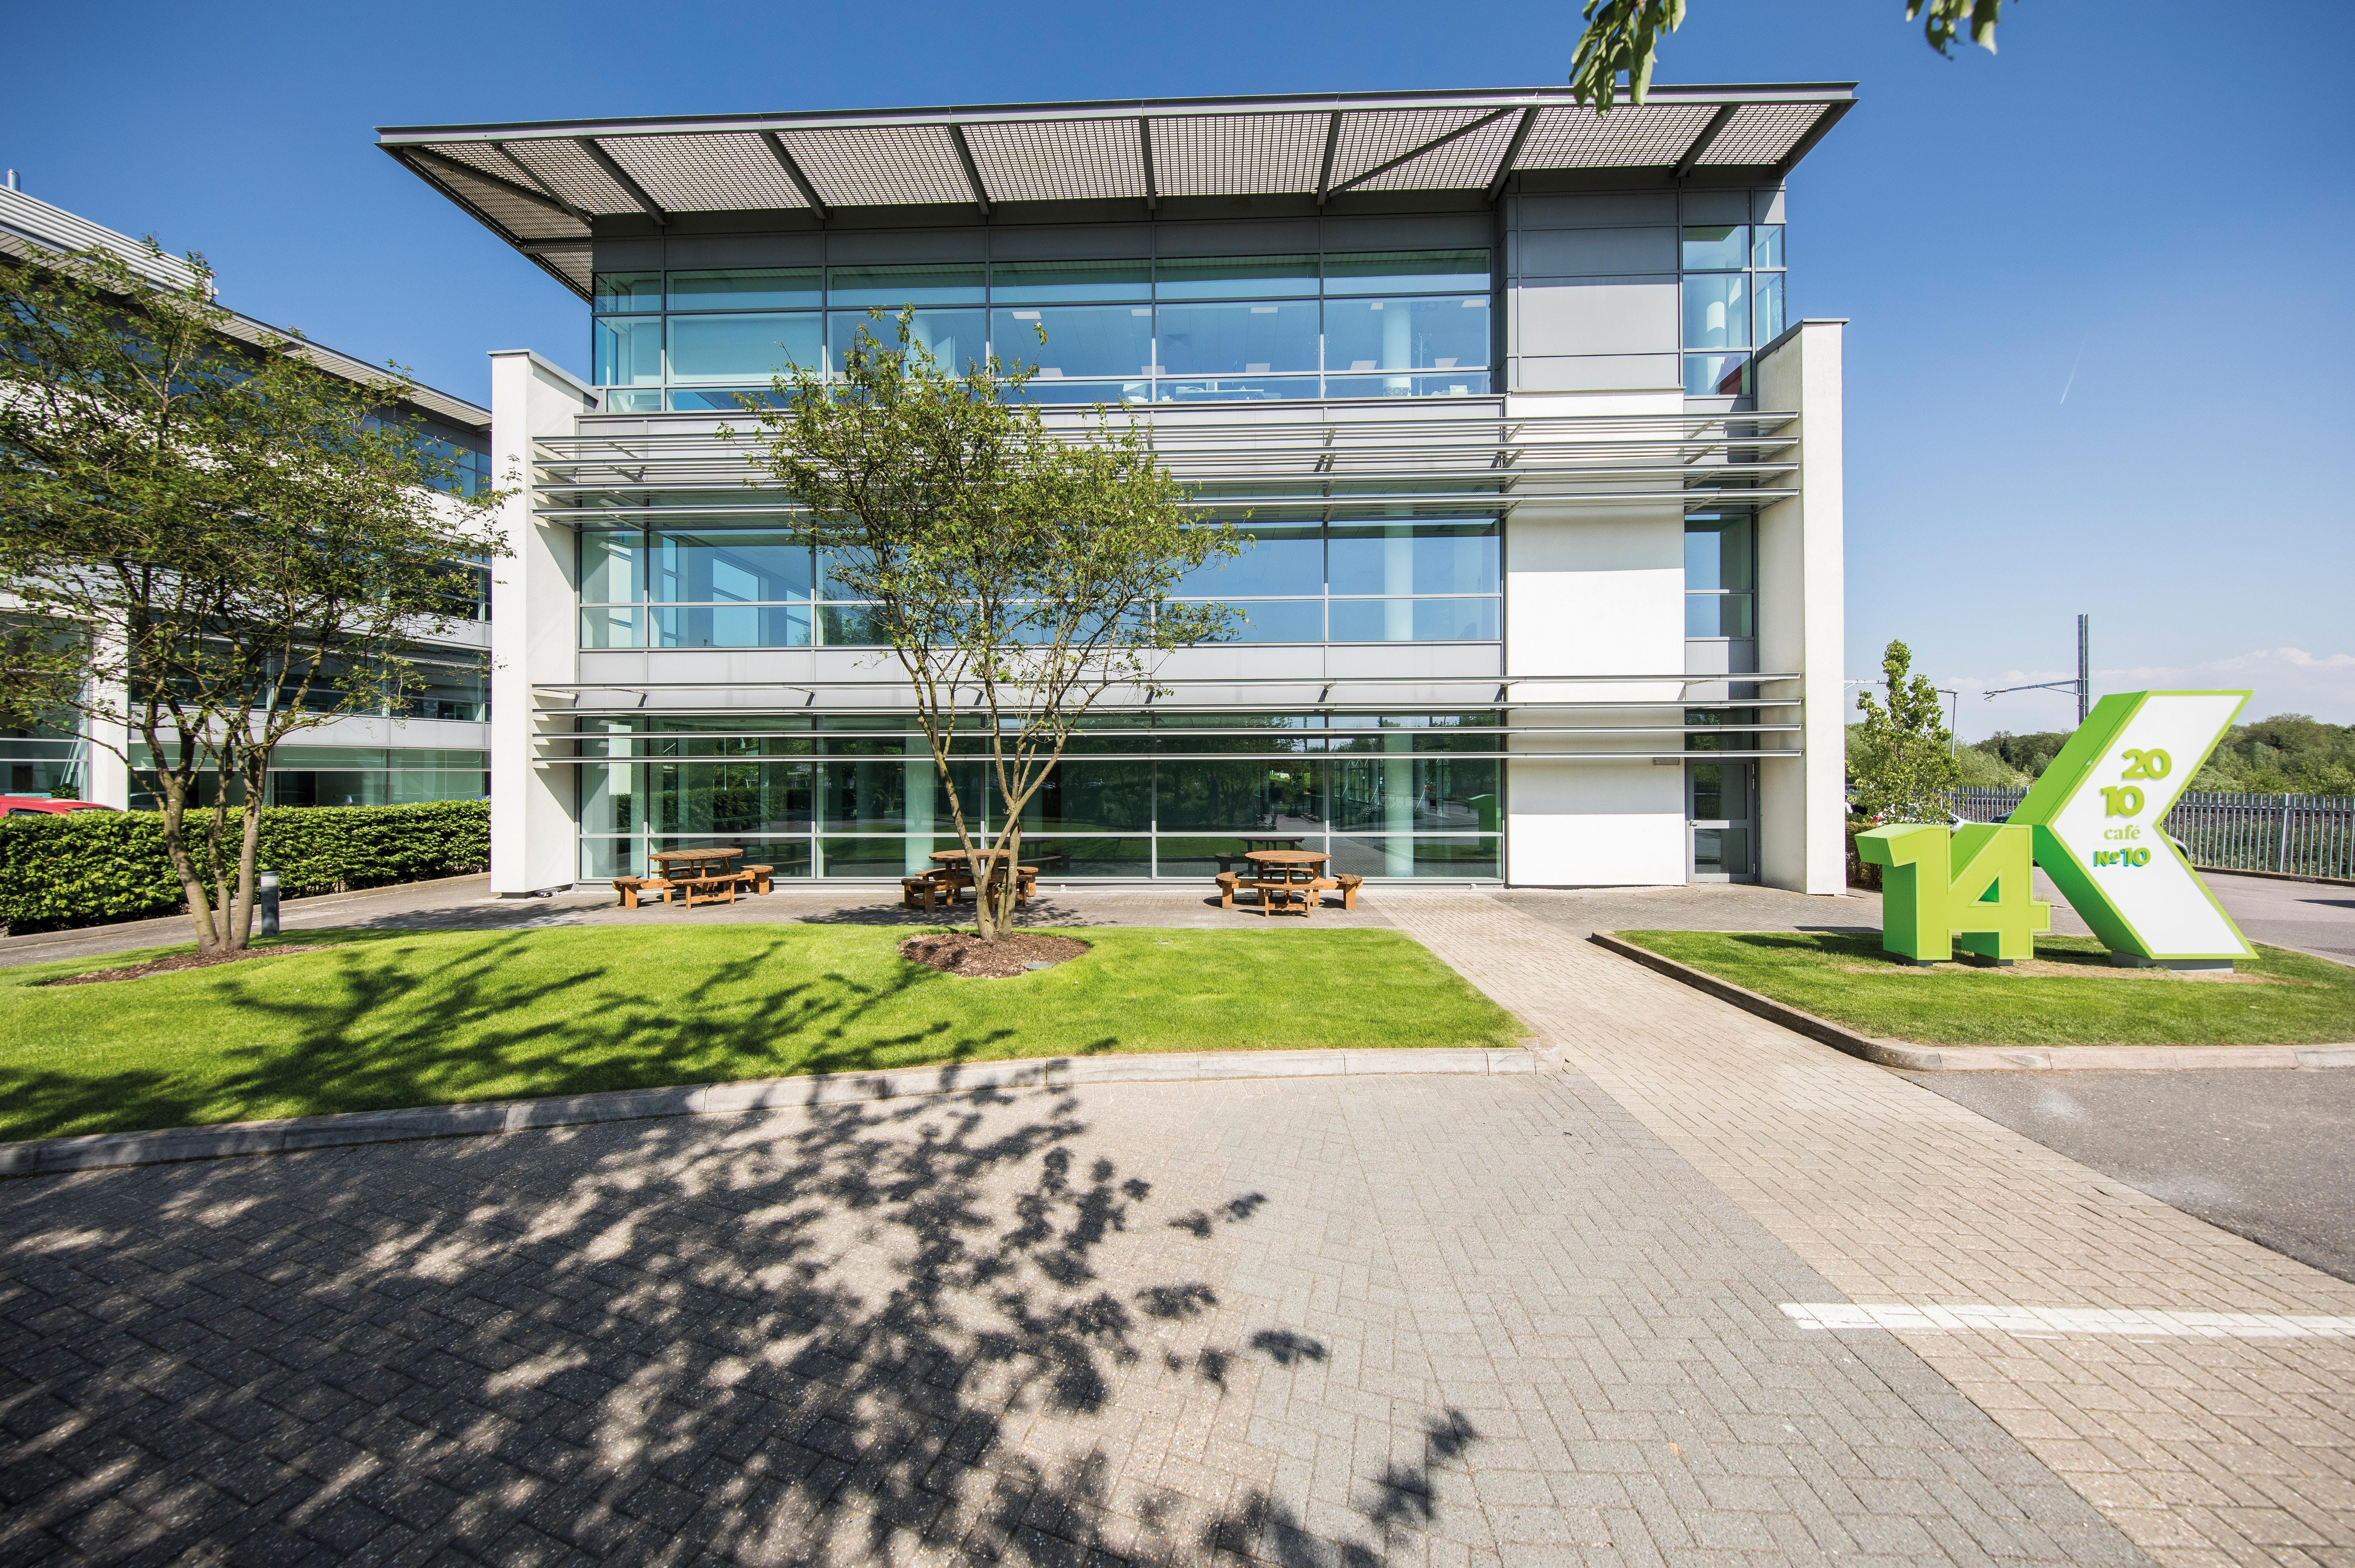 1430 Arlington Business Park, Reading, Offices To Let - A86A4631.jpg